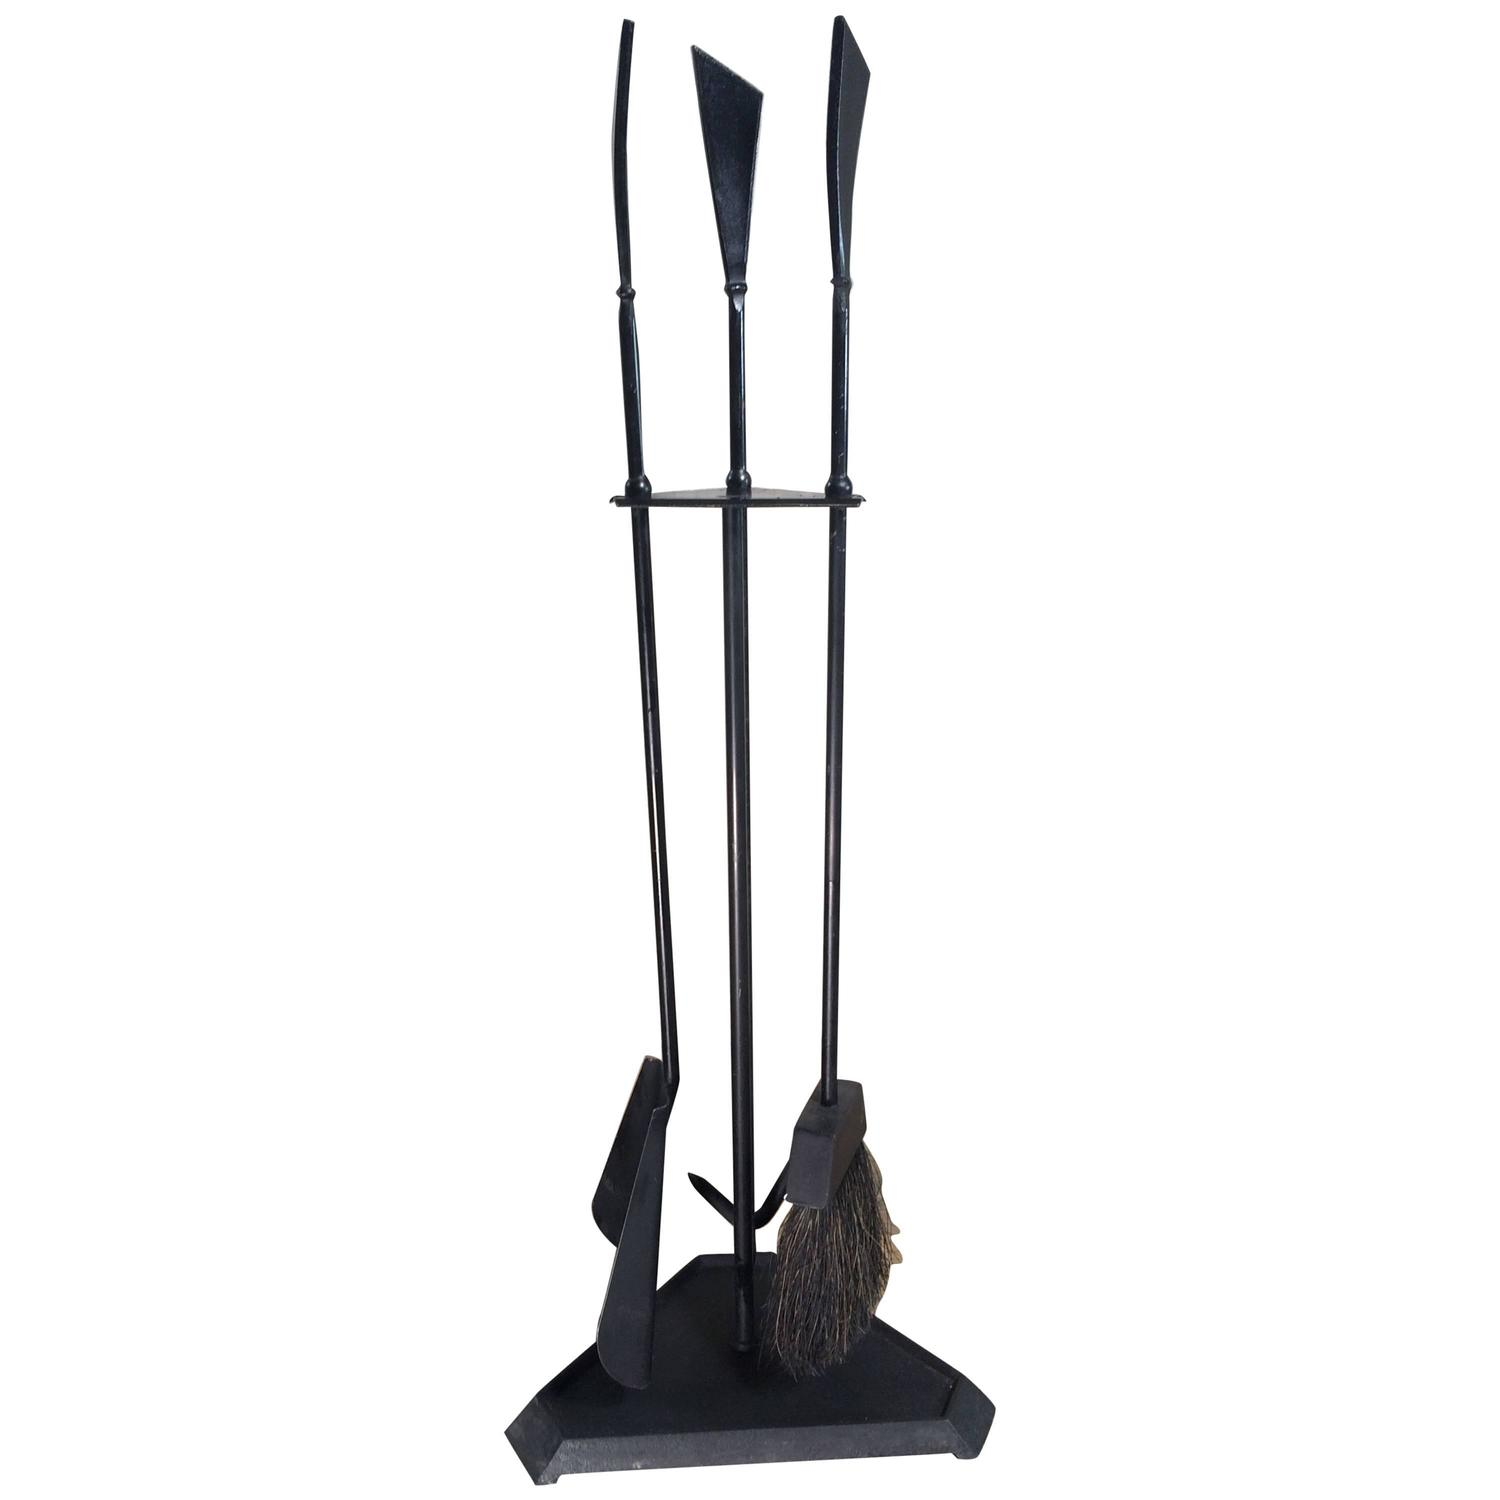 Brilliant wrought iron fireplace tools pine firelace tool for your home interior tool improvements